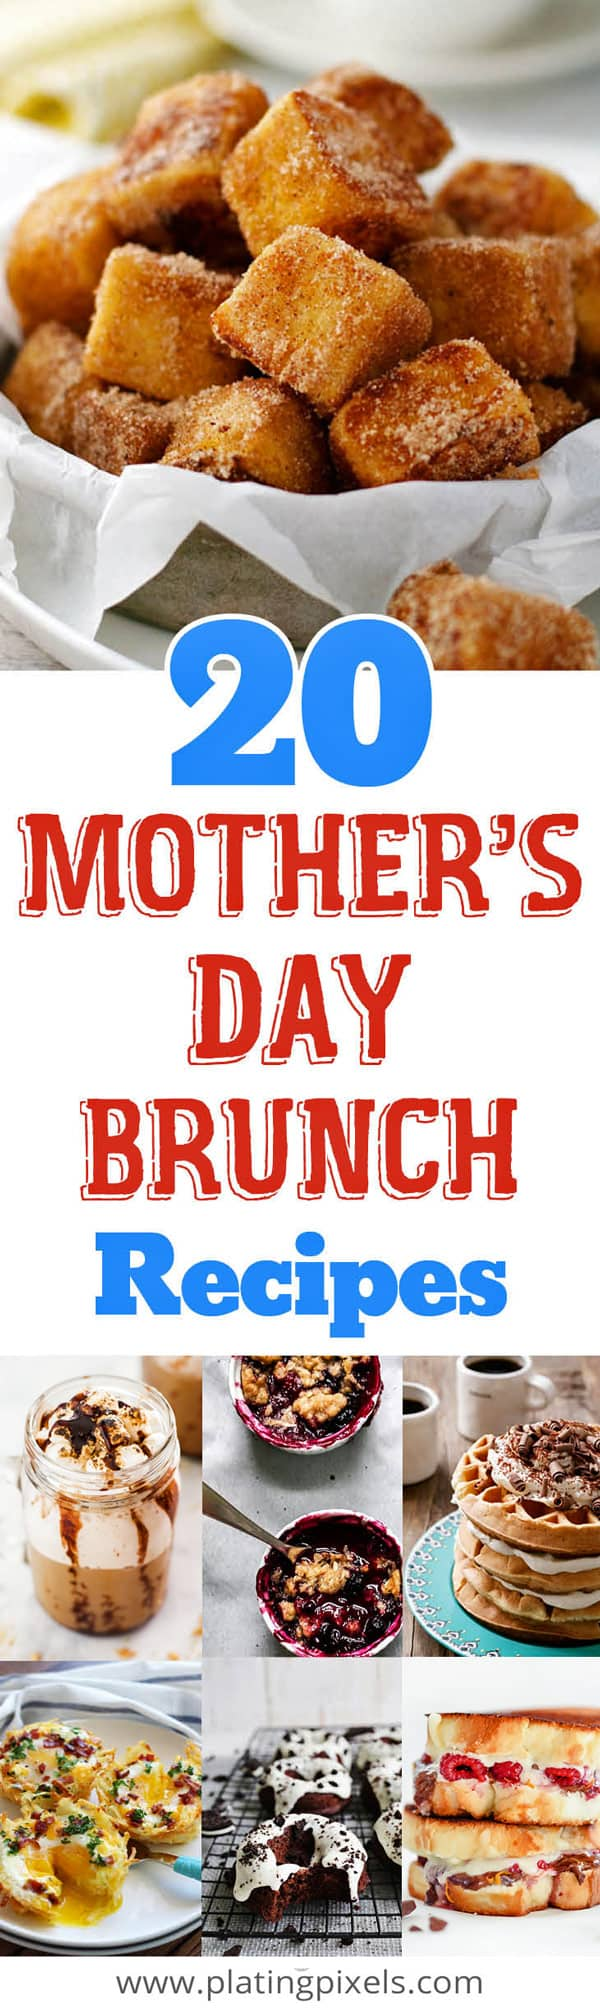 Show mom just how much she means to you with these 20 Mother\'s Day brunch recipes. From French toast, crepes, waffles, pancakes, muffins, donuts, quiches, biscuits and gravy, scones, and other sweets, here you\'ll find the best brunch recipe ideas for Mother\'s Day. #mothersday #brunch #breakfastrecipes